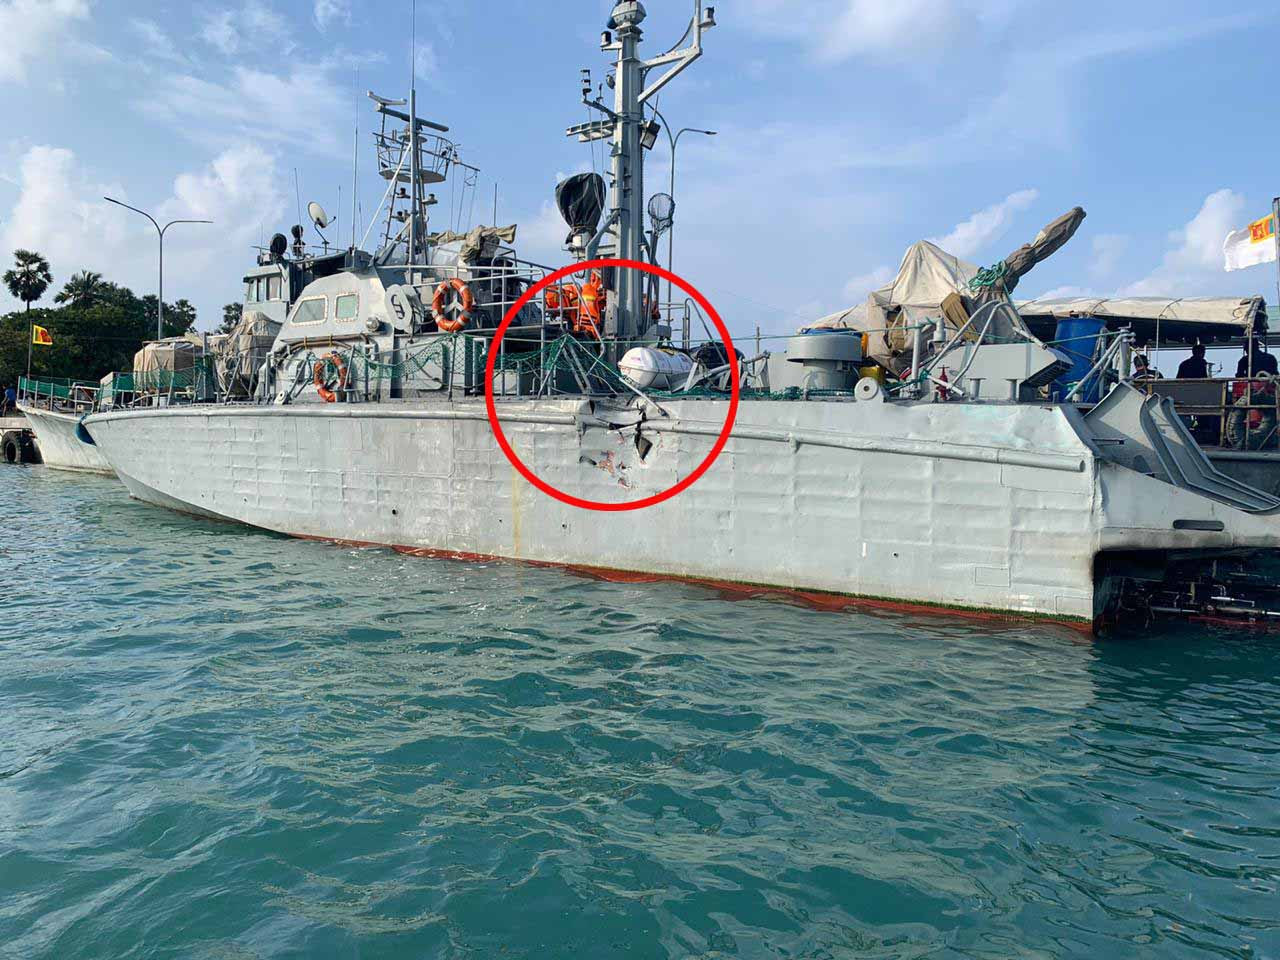 Navy in search and rescue operation to locate fishermen